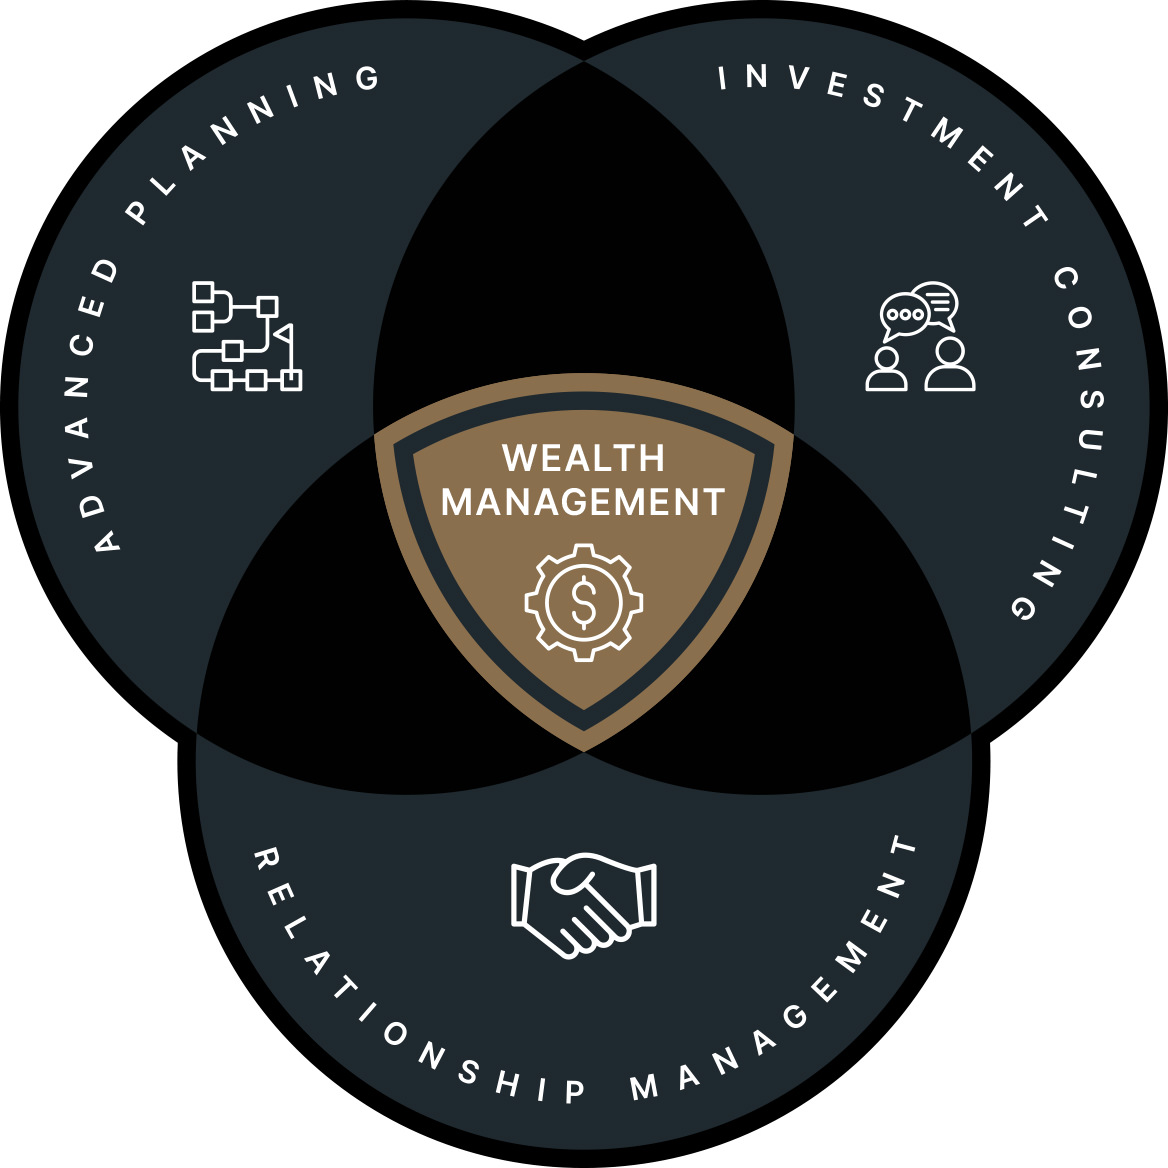 Castlepoint Wealth Management Formula: Advanced Planning, Investment Consulting, and Relationship Management